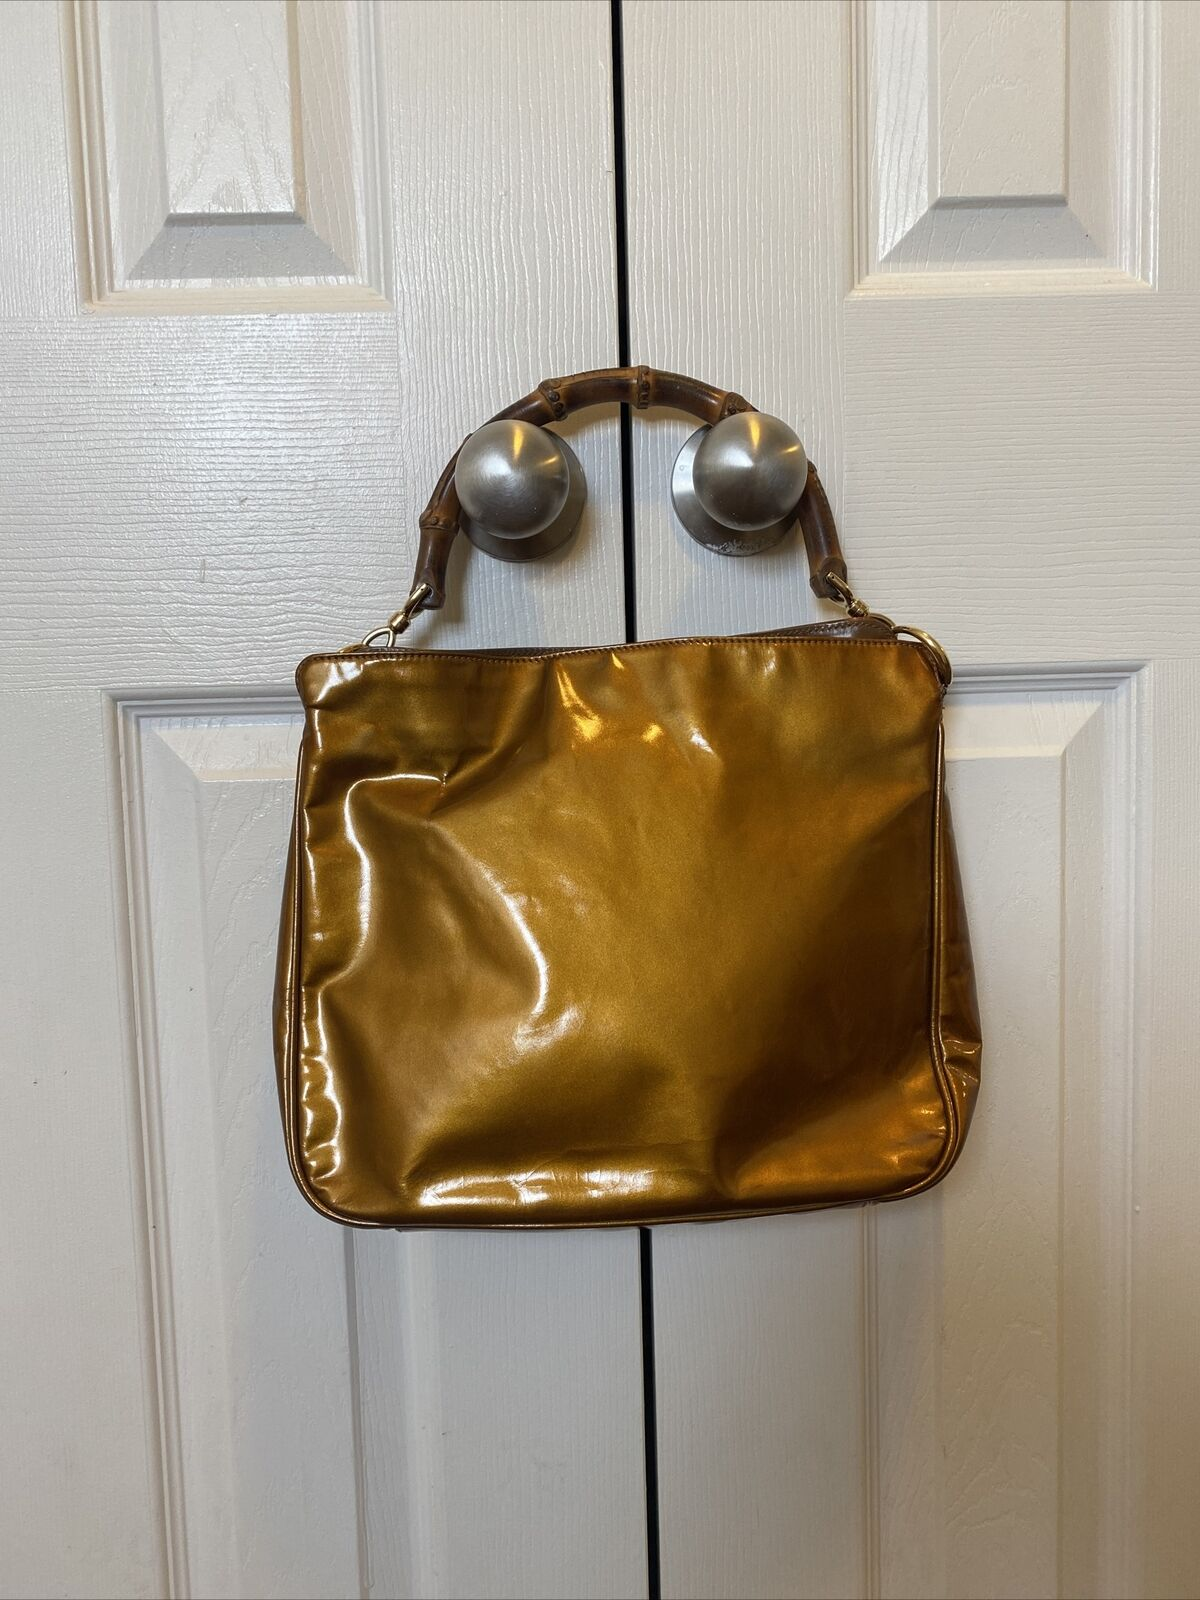 GUCCI COPPER BAMBOO HANDLE BAG VINTAGE DIANA LEAT… - image 2